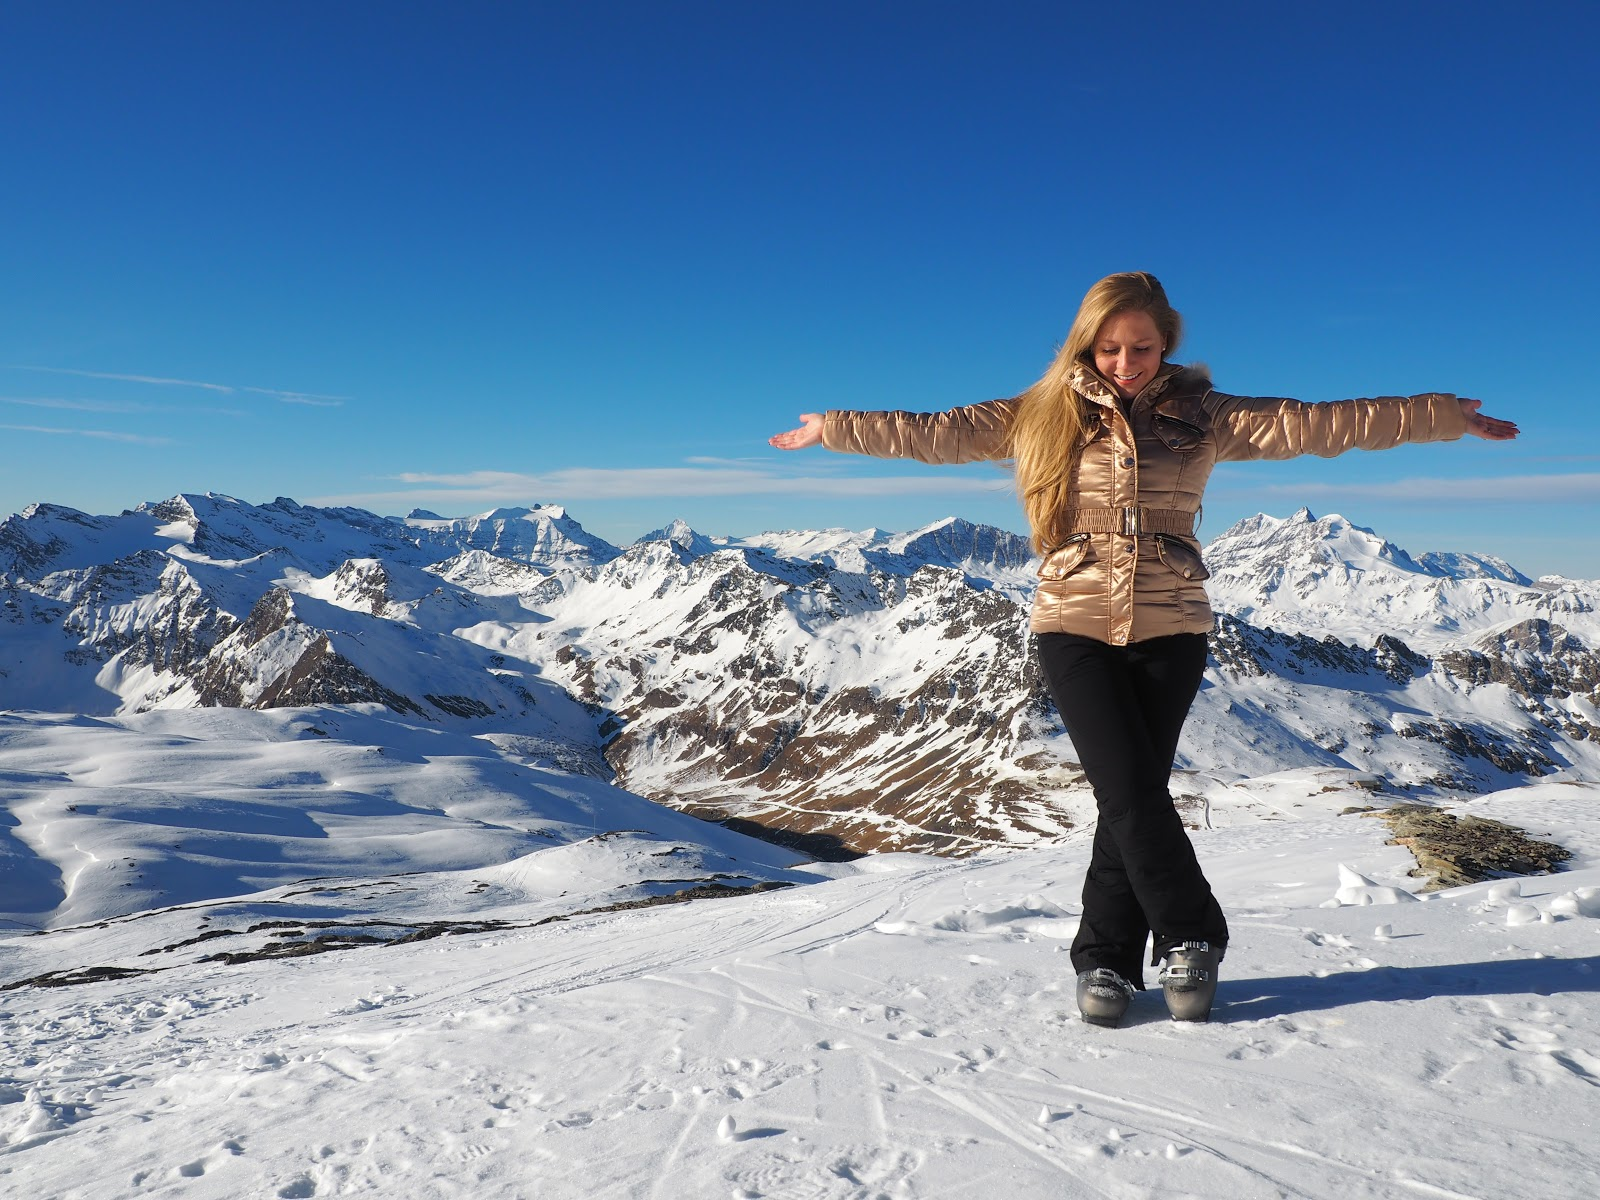 Girl wearing gold jacket standing on top of a snowy mountain in Val d'isere, France